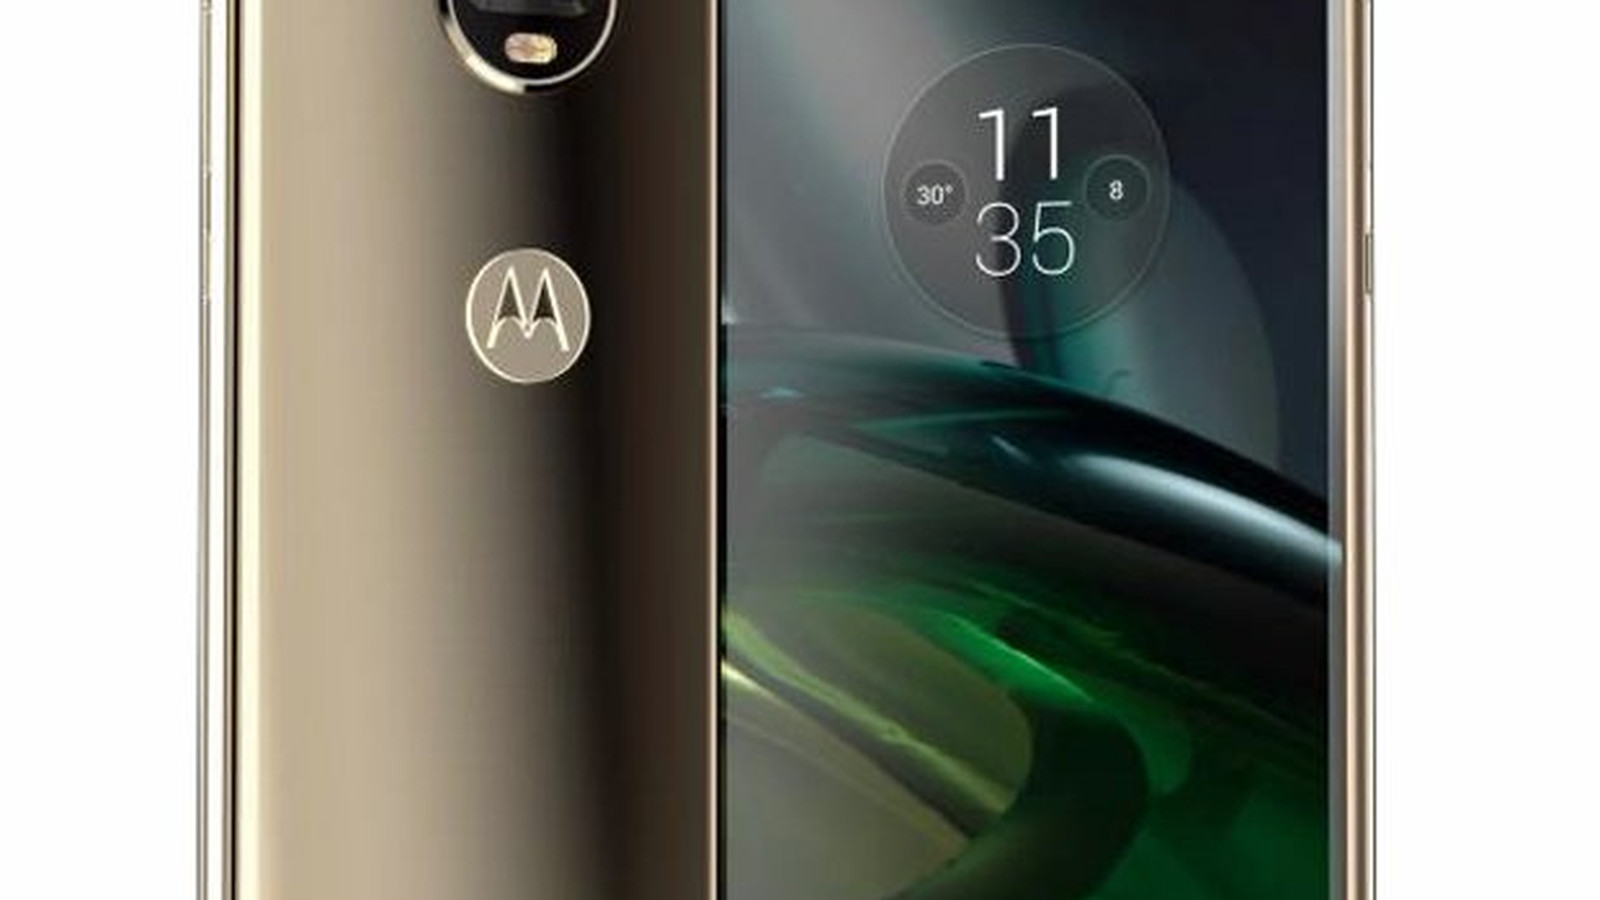 Moto X4 photo leaked, showing dual cameras and curved screen